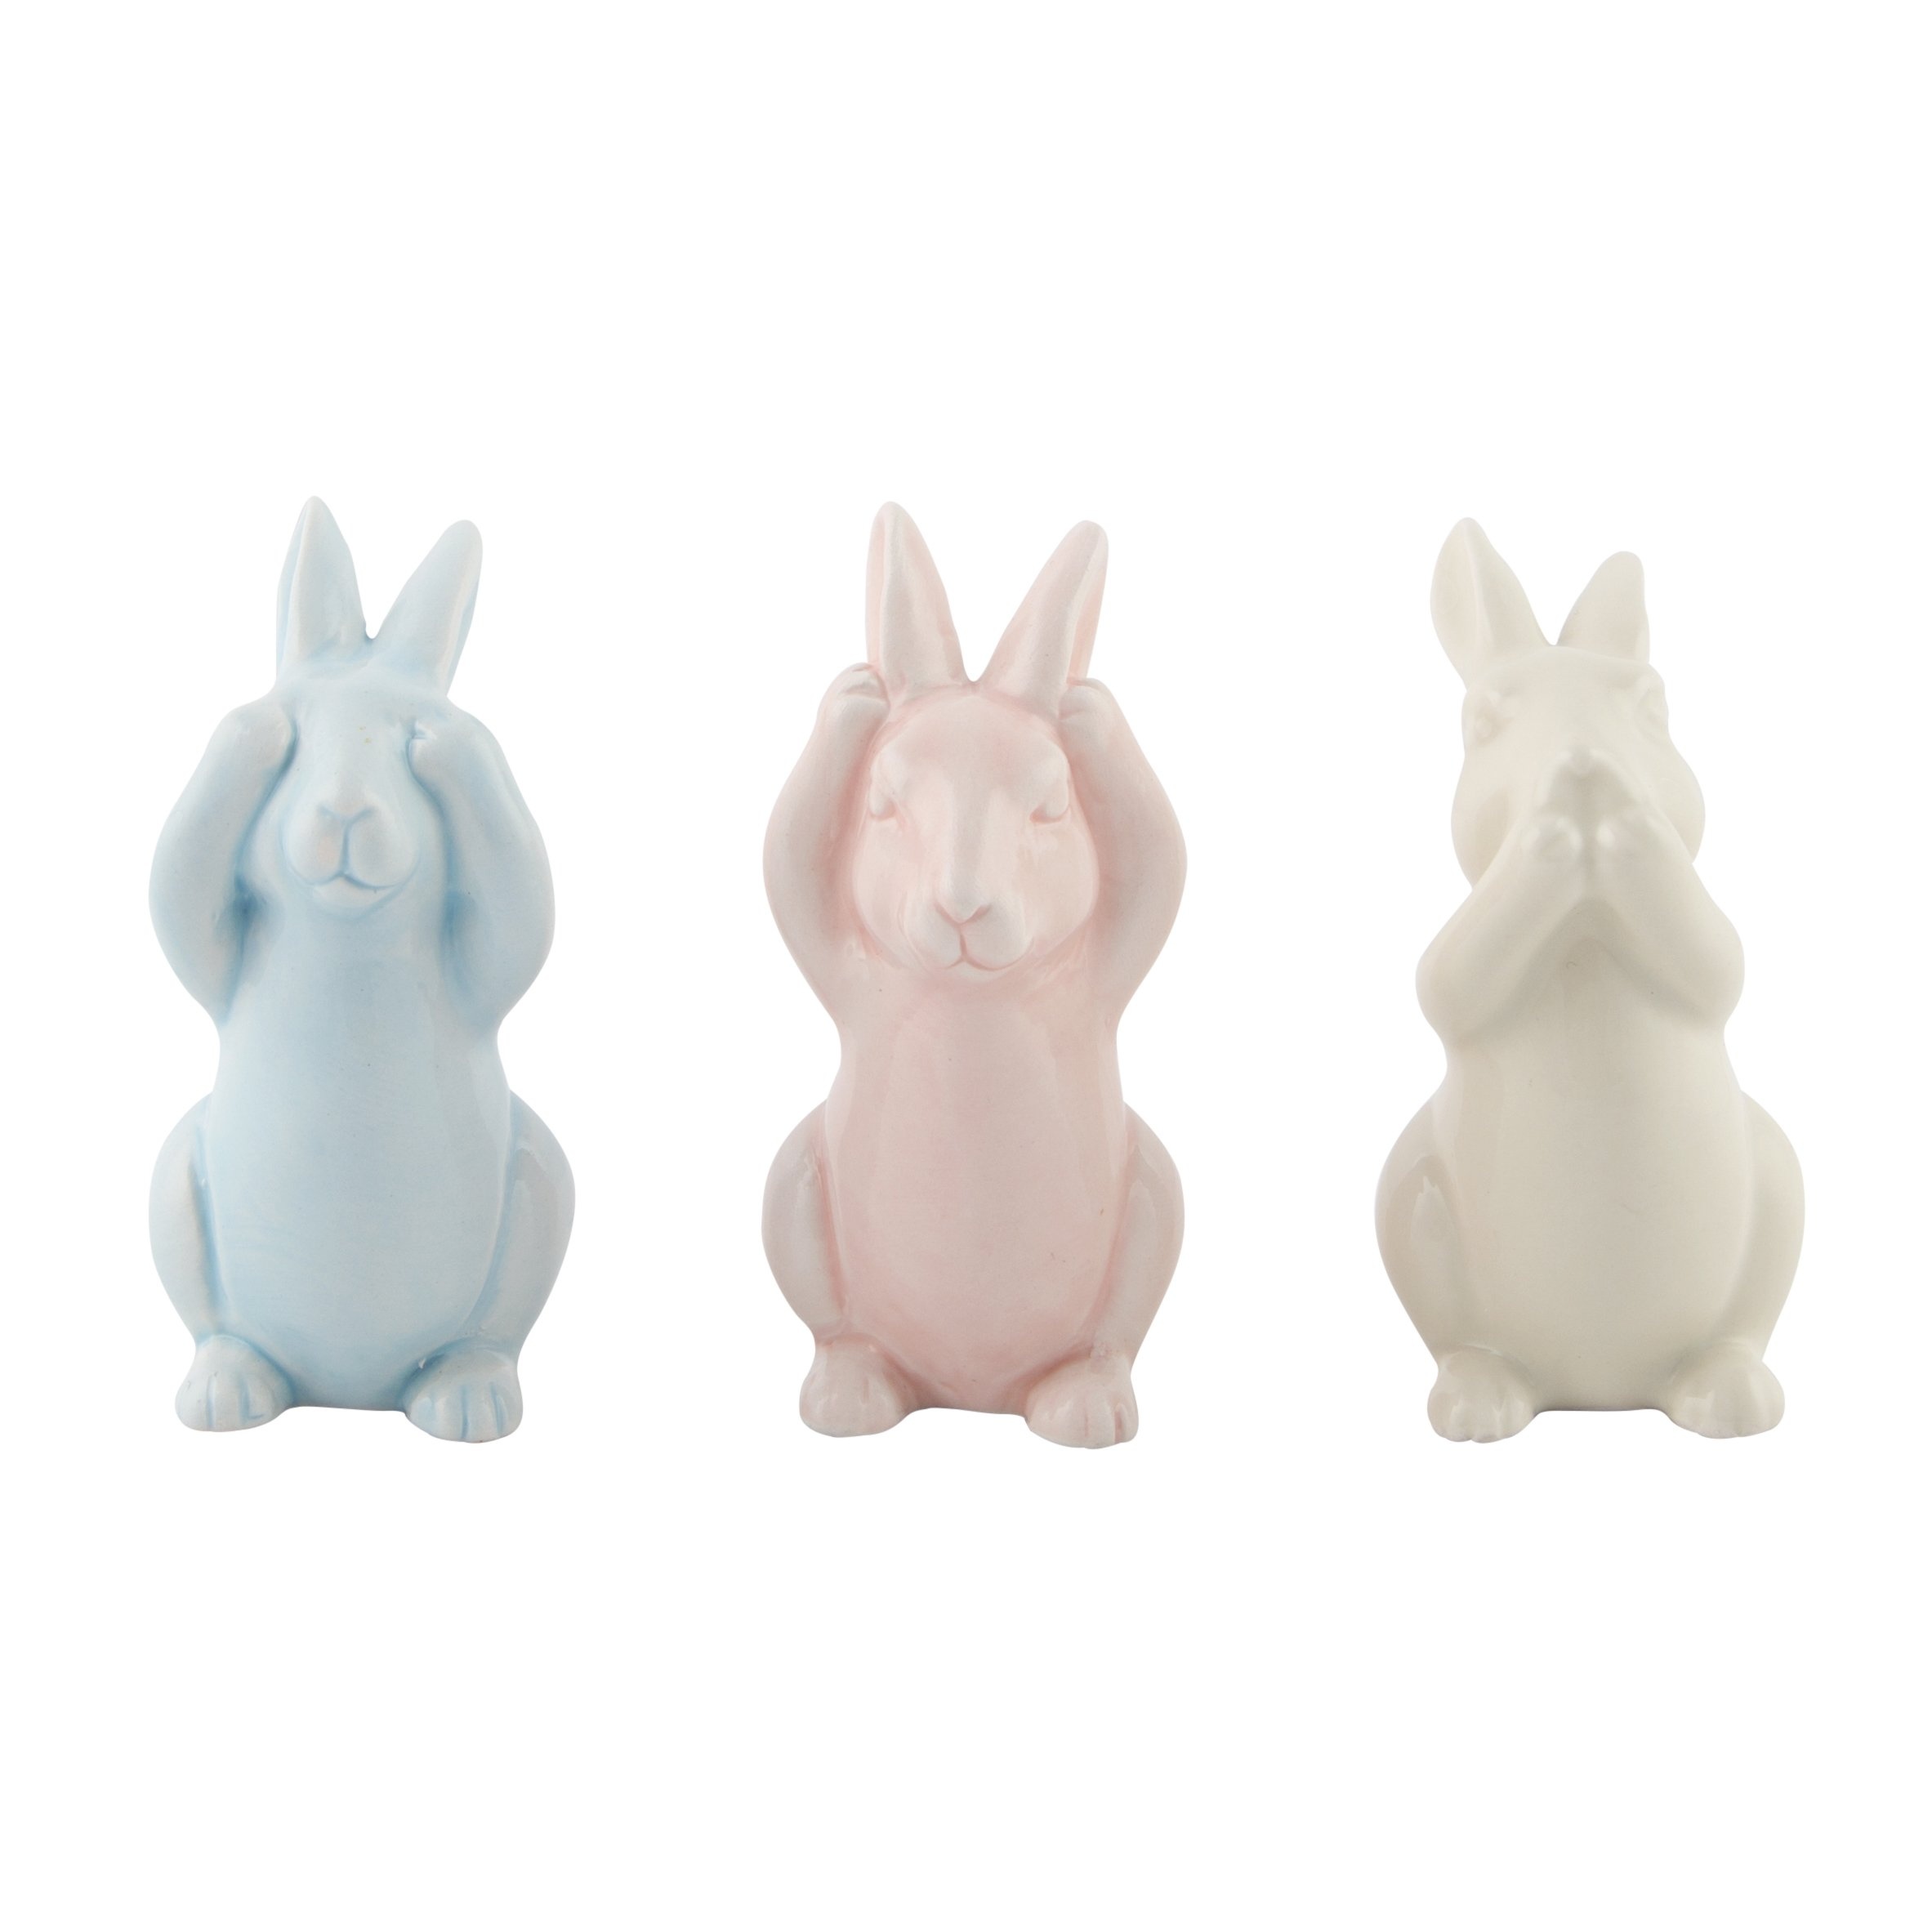 Set of 3 Ceramic Pastel Peakaboo Bunnies Nursery Decor